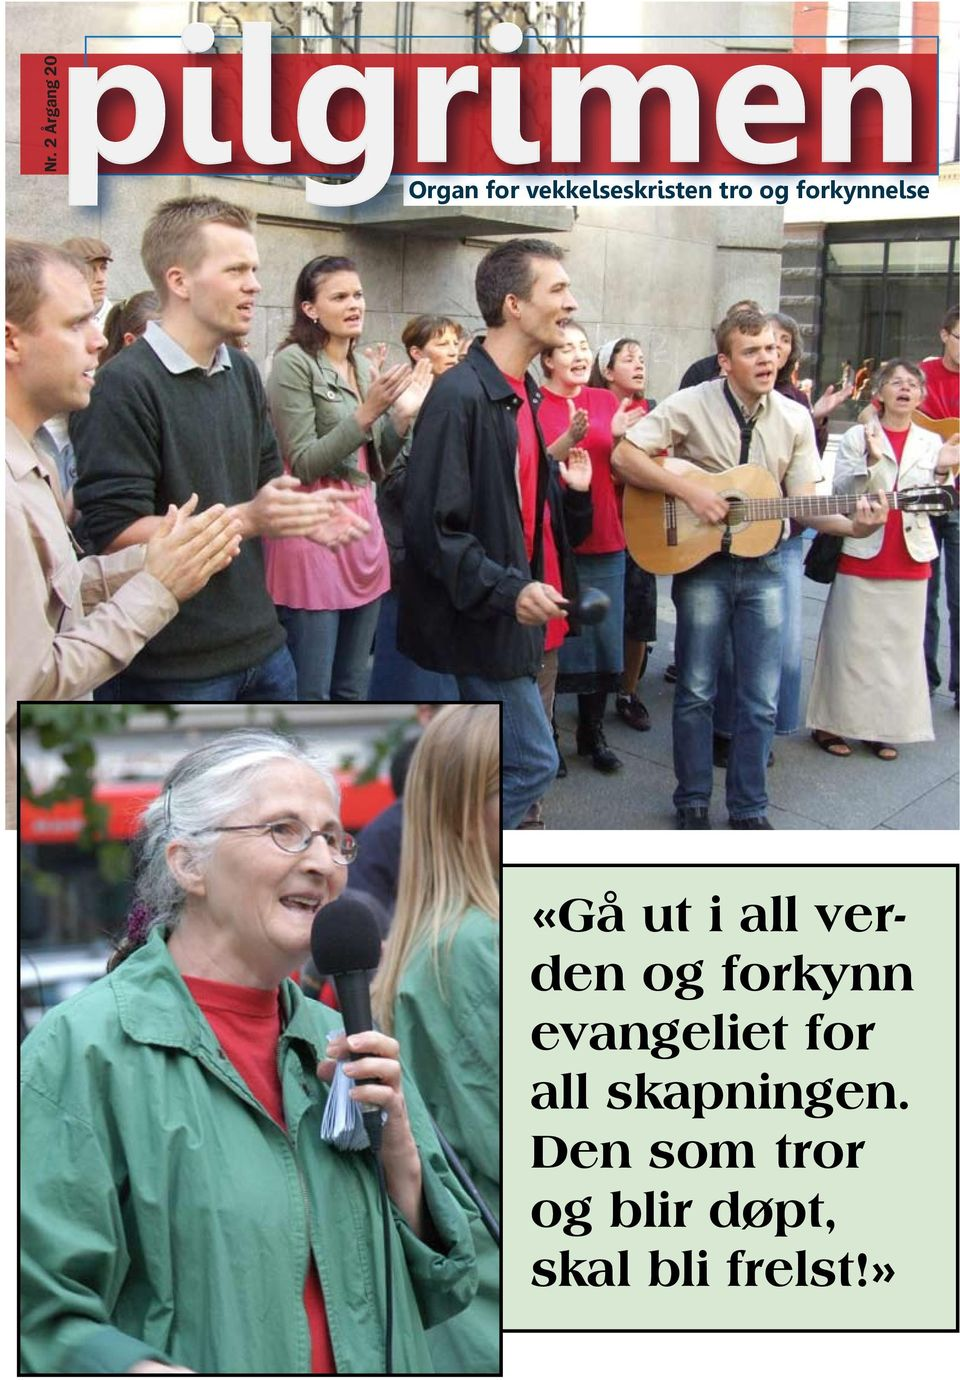 forkynn evangeliet for all skapningen.